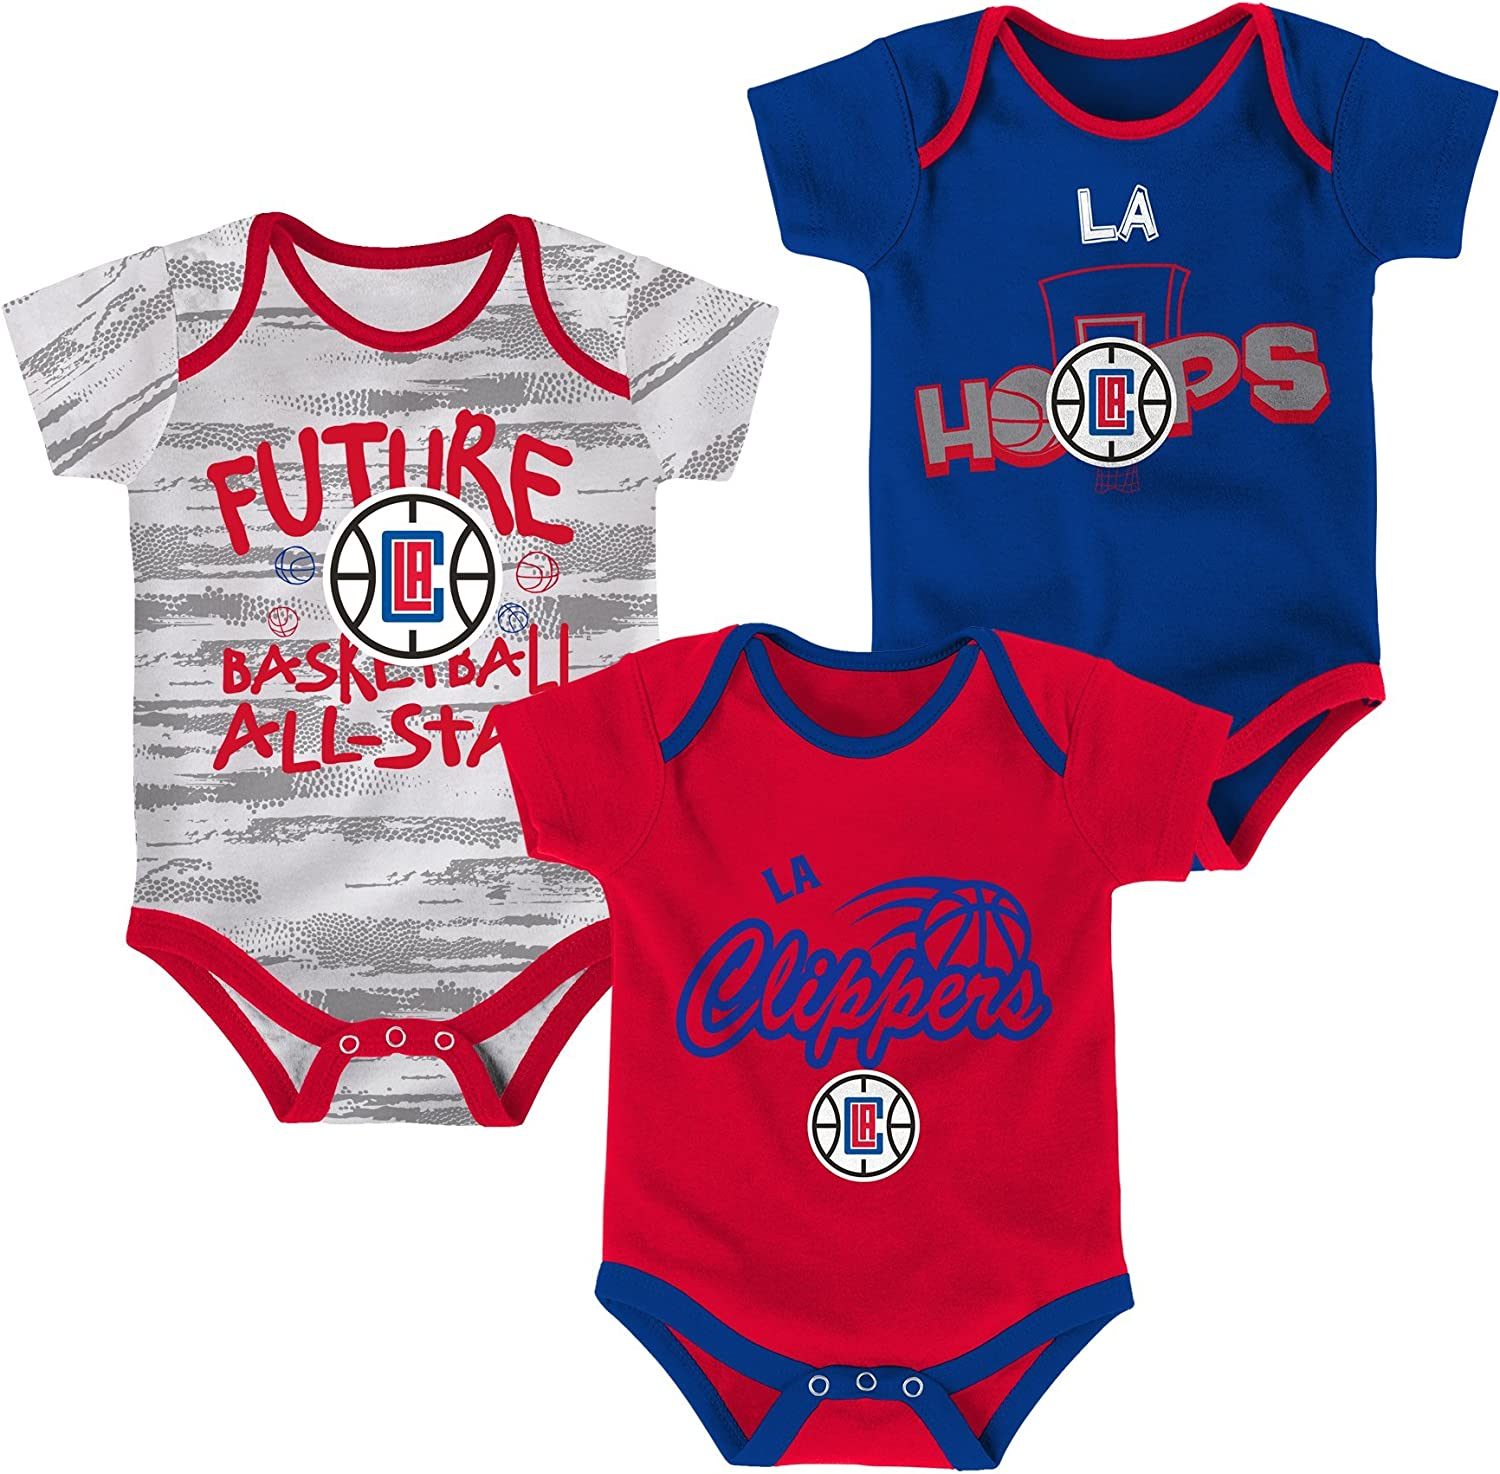 Outerstuff NCAA Ohio State Baby and Toddler Team Jersey and Pant Set